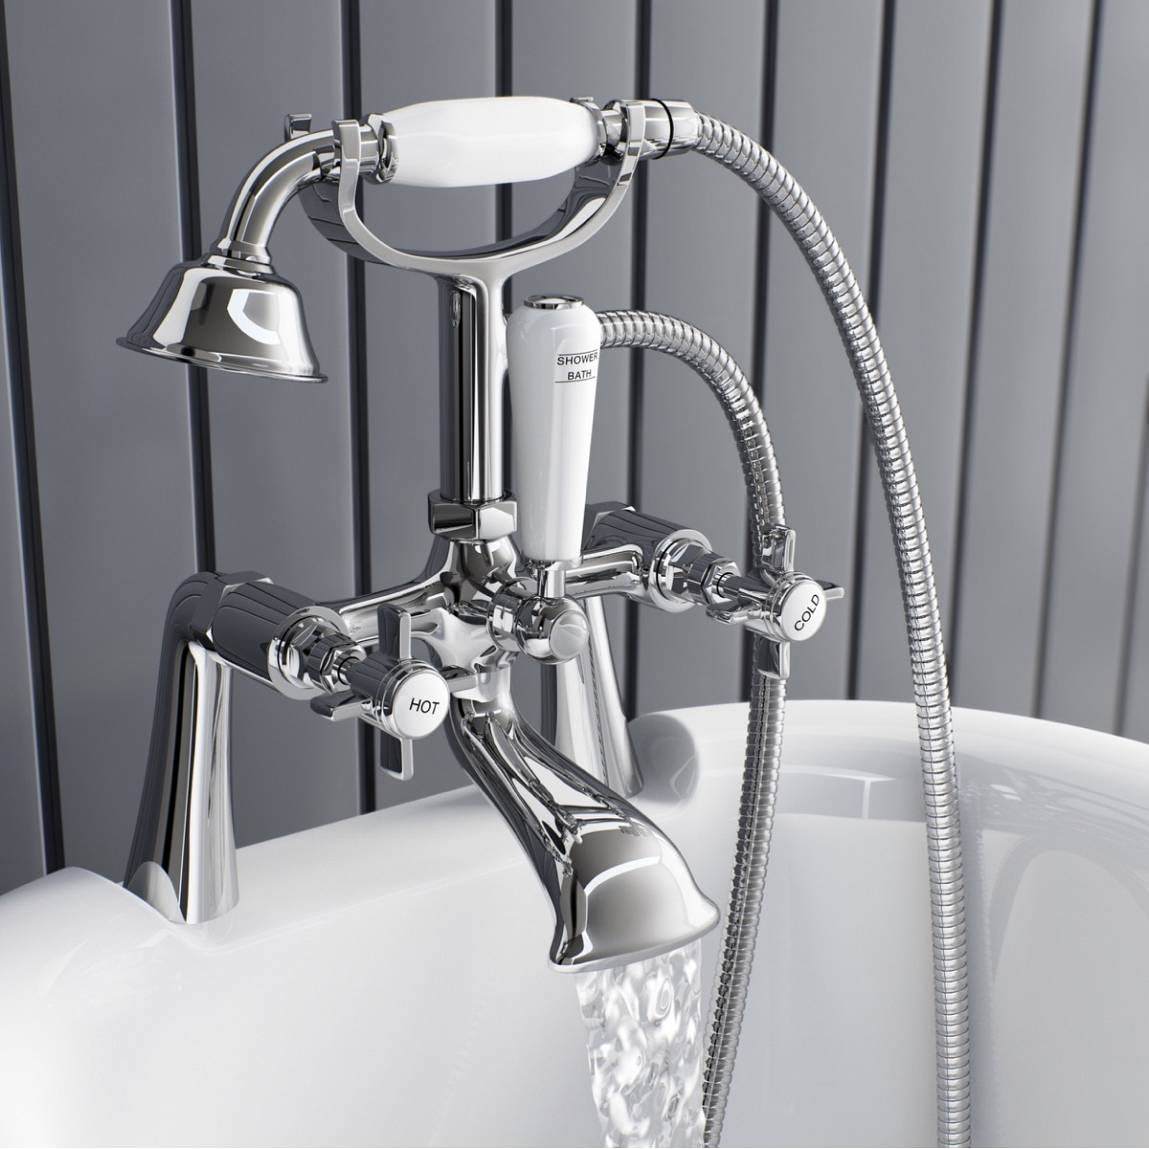 The Bath Co. Dulwich bath shower mixer tap | VictoriaPlum.com